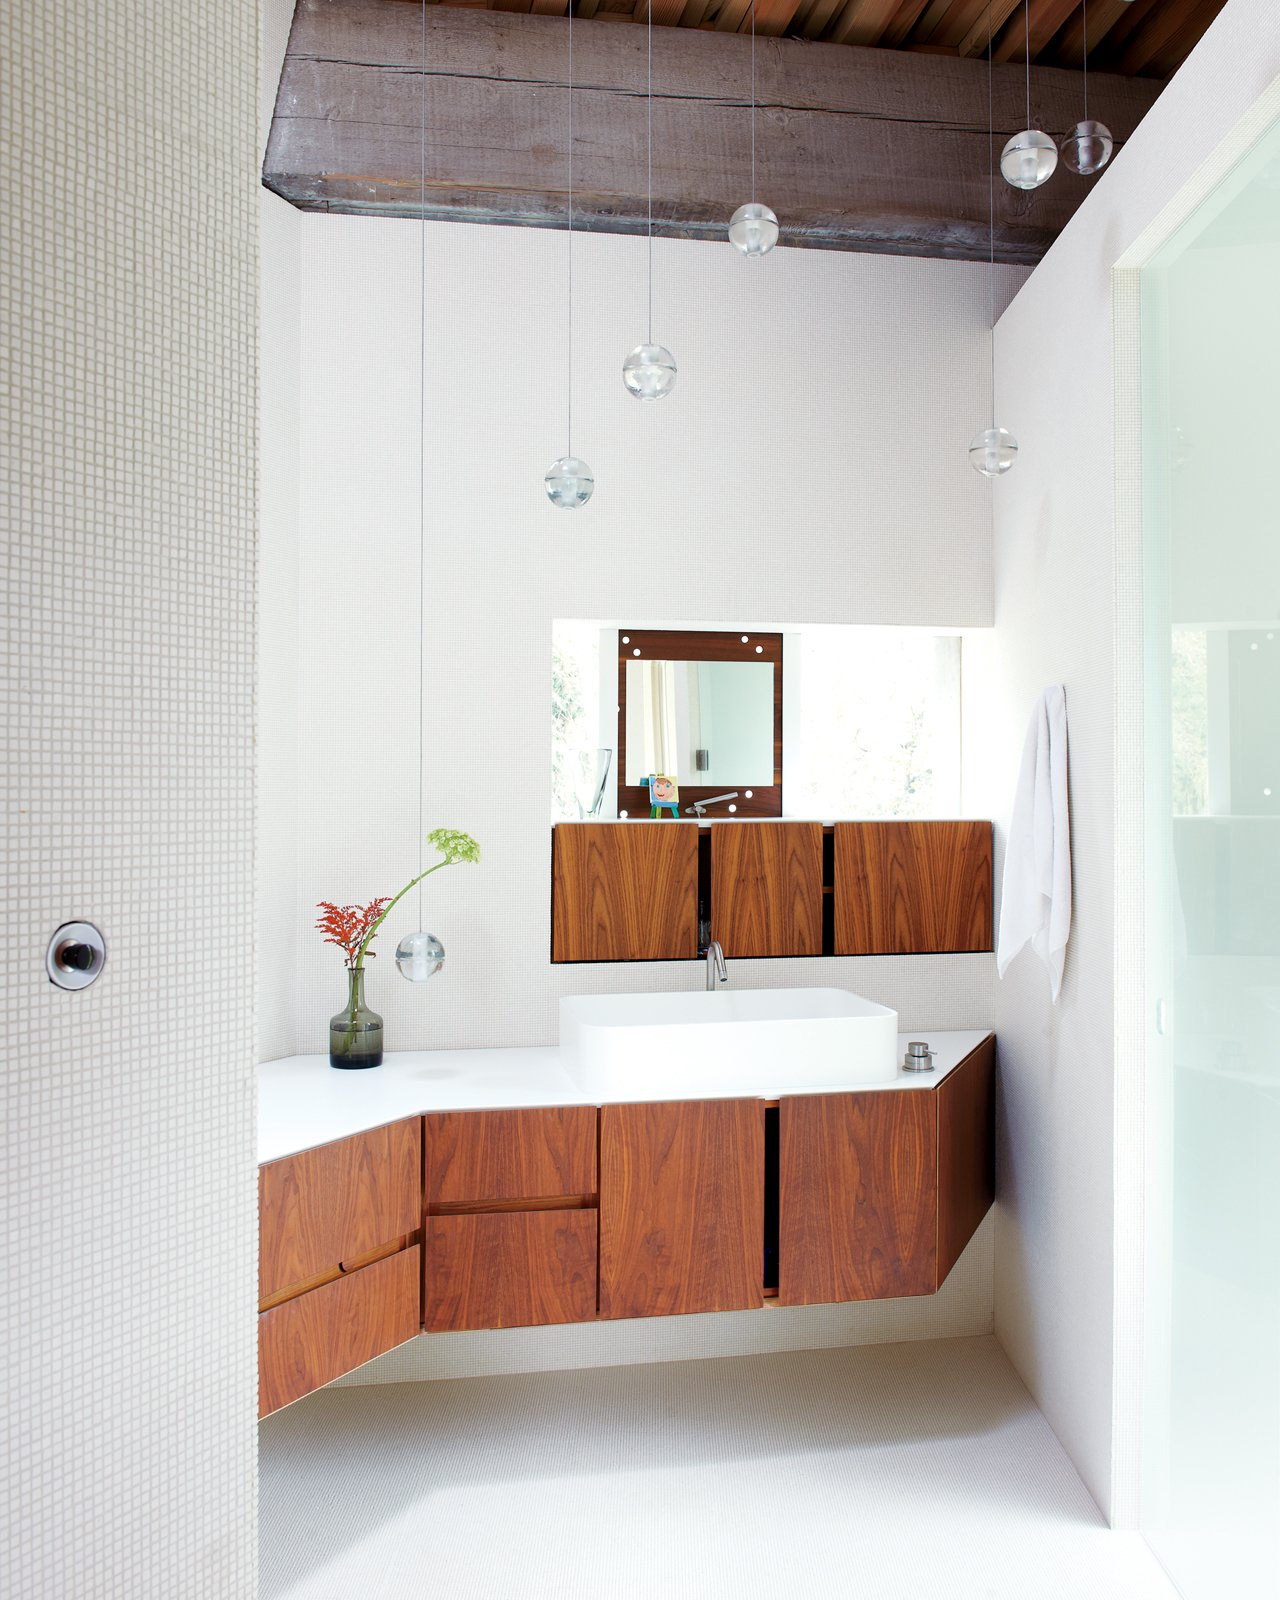 Bath Room, Wood Counter, and Vessel Sink White tiles envelop the en suite master bathroom.   Photos from 23.2 House